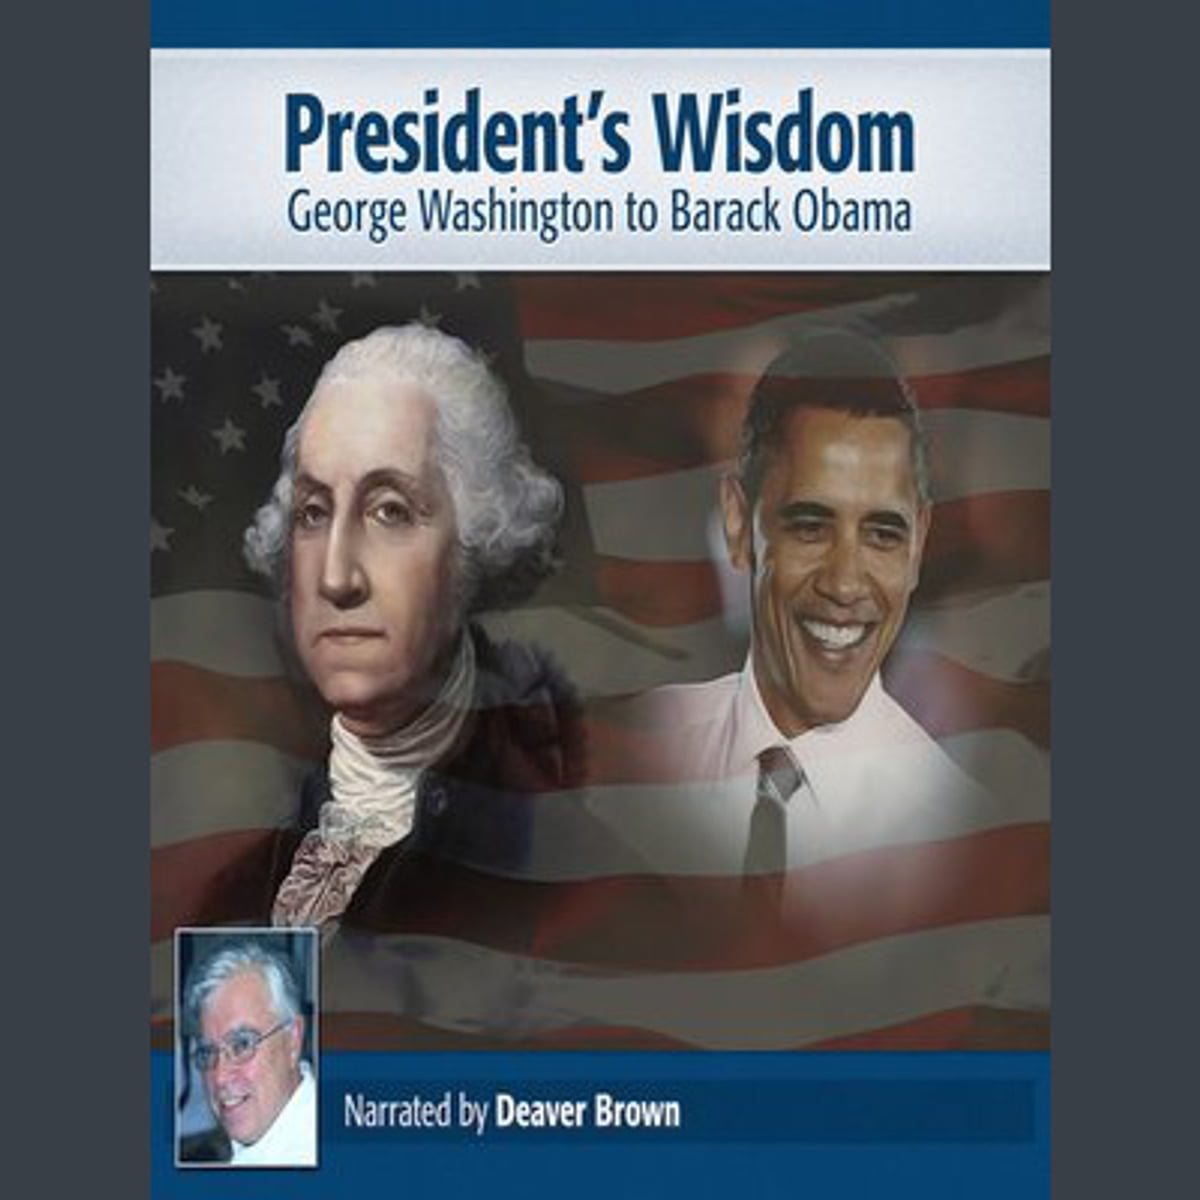 Presidential Wisdom Audiobook by Deaver Brown - 9781614961970 | Rakuten Kobo